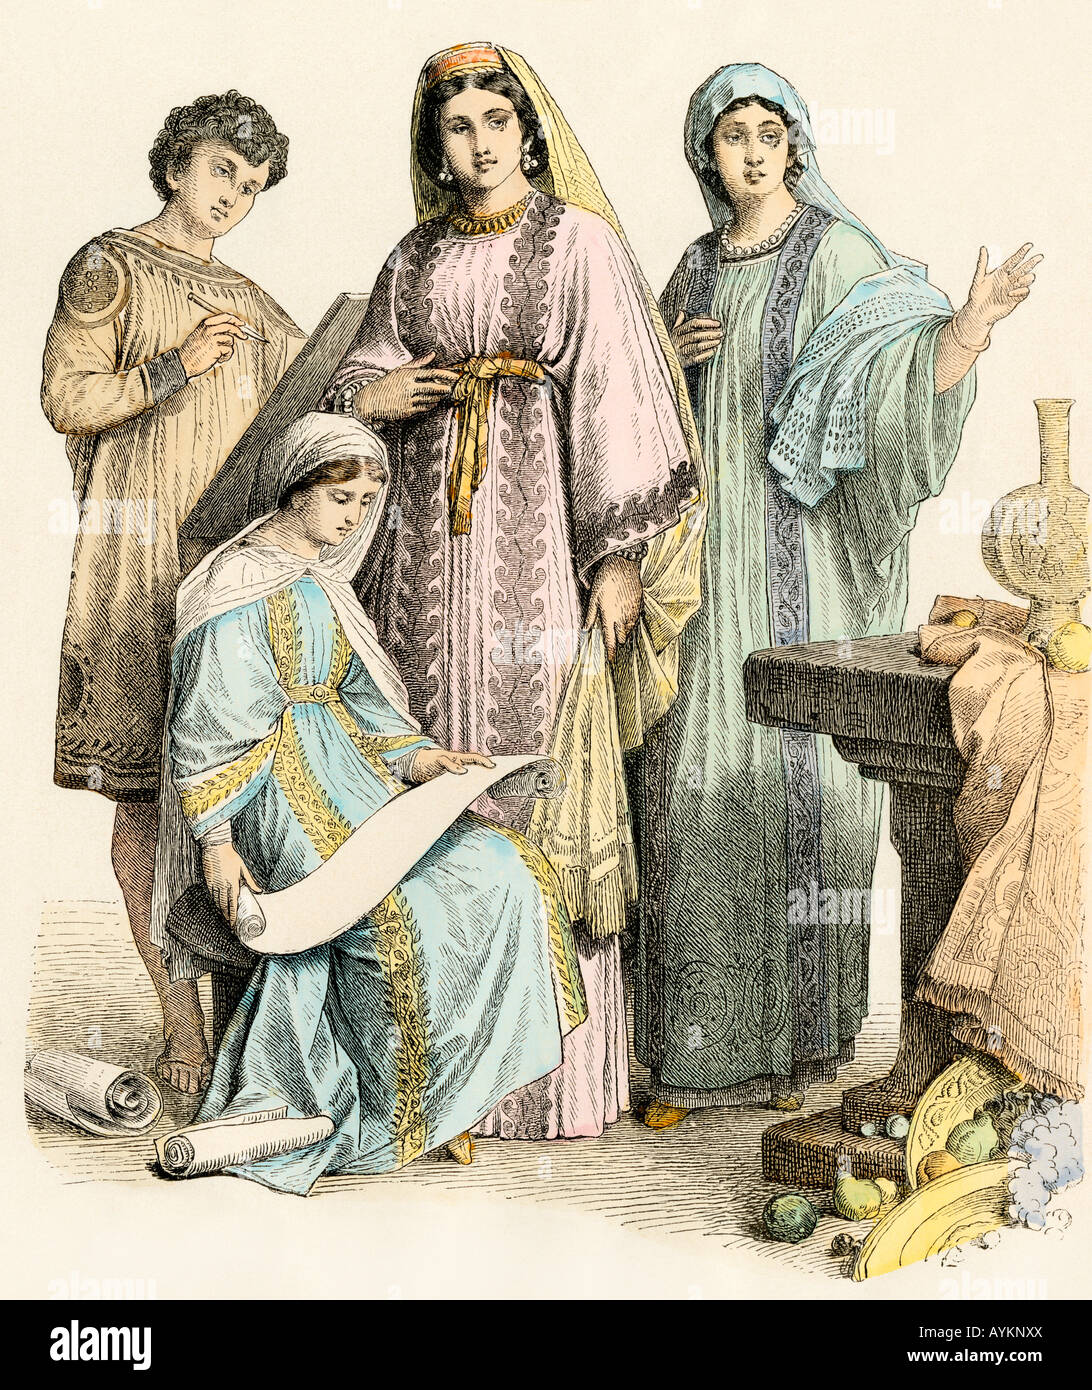 Early Christians reading a scroll in the time of the Roman Empire. Hand-colored print - Stock Image